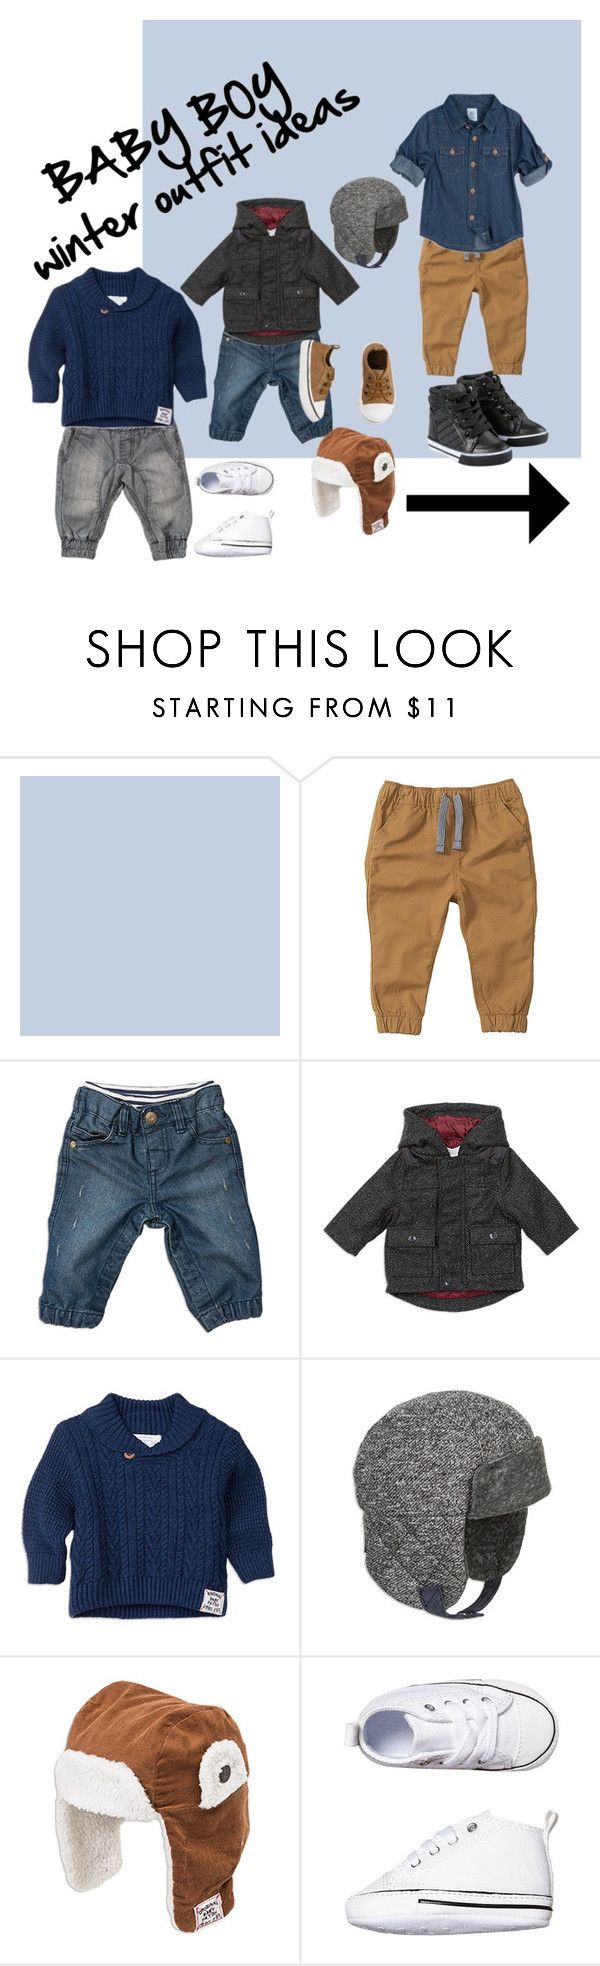 """""""BABY BOY winter outfit ideas"""" by mrsandmummy on Polyvore featuring men's fashion and menswear"""